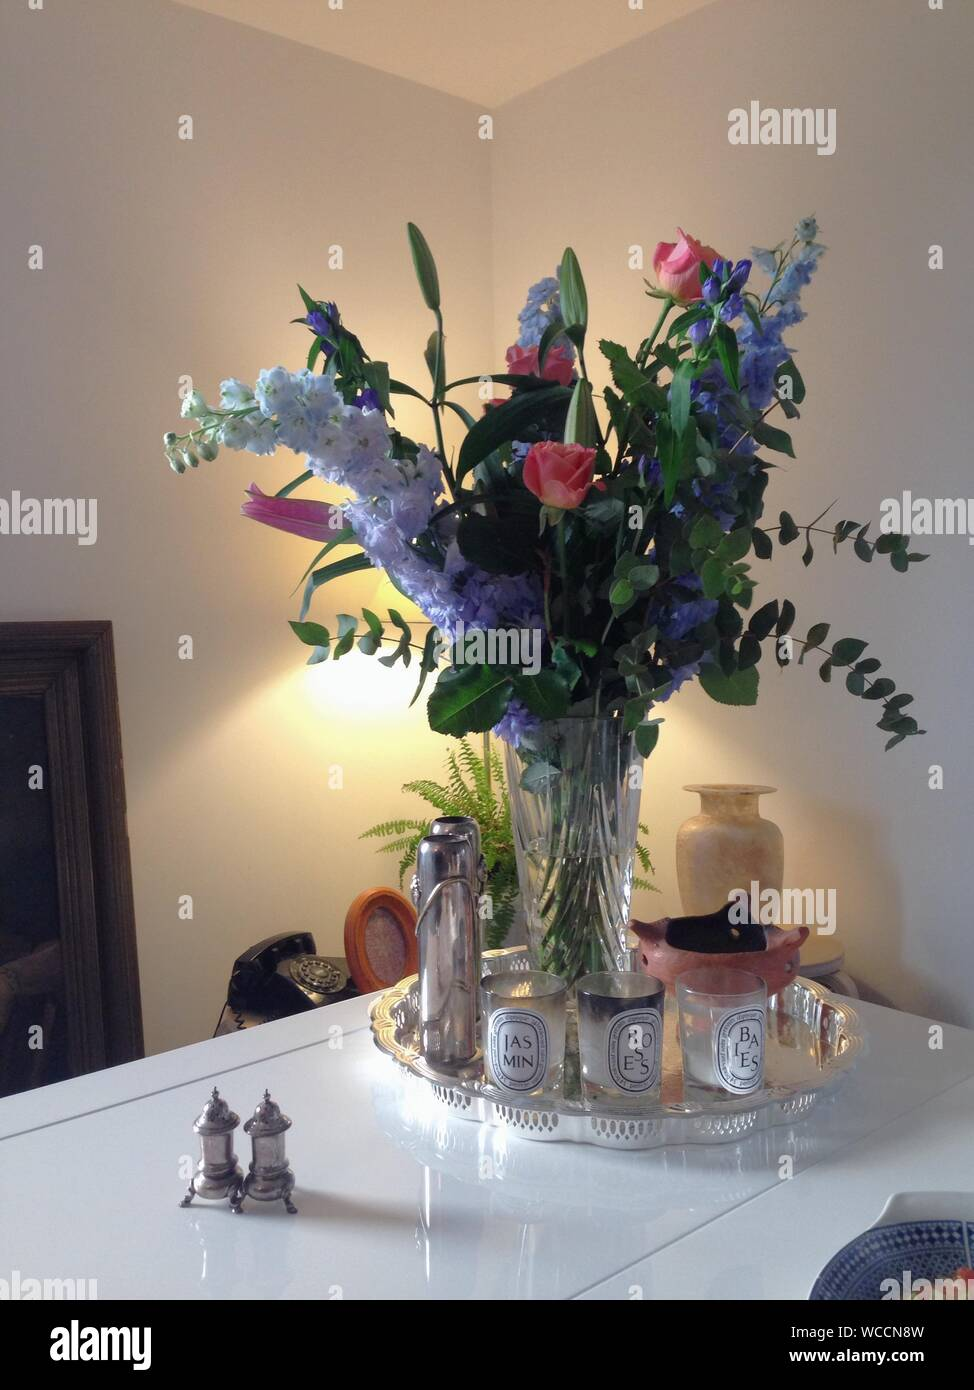 Flower Bouquet On Dining Table At Home Stock Photo Alamy